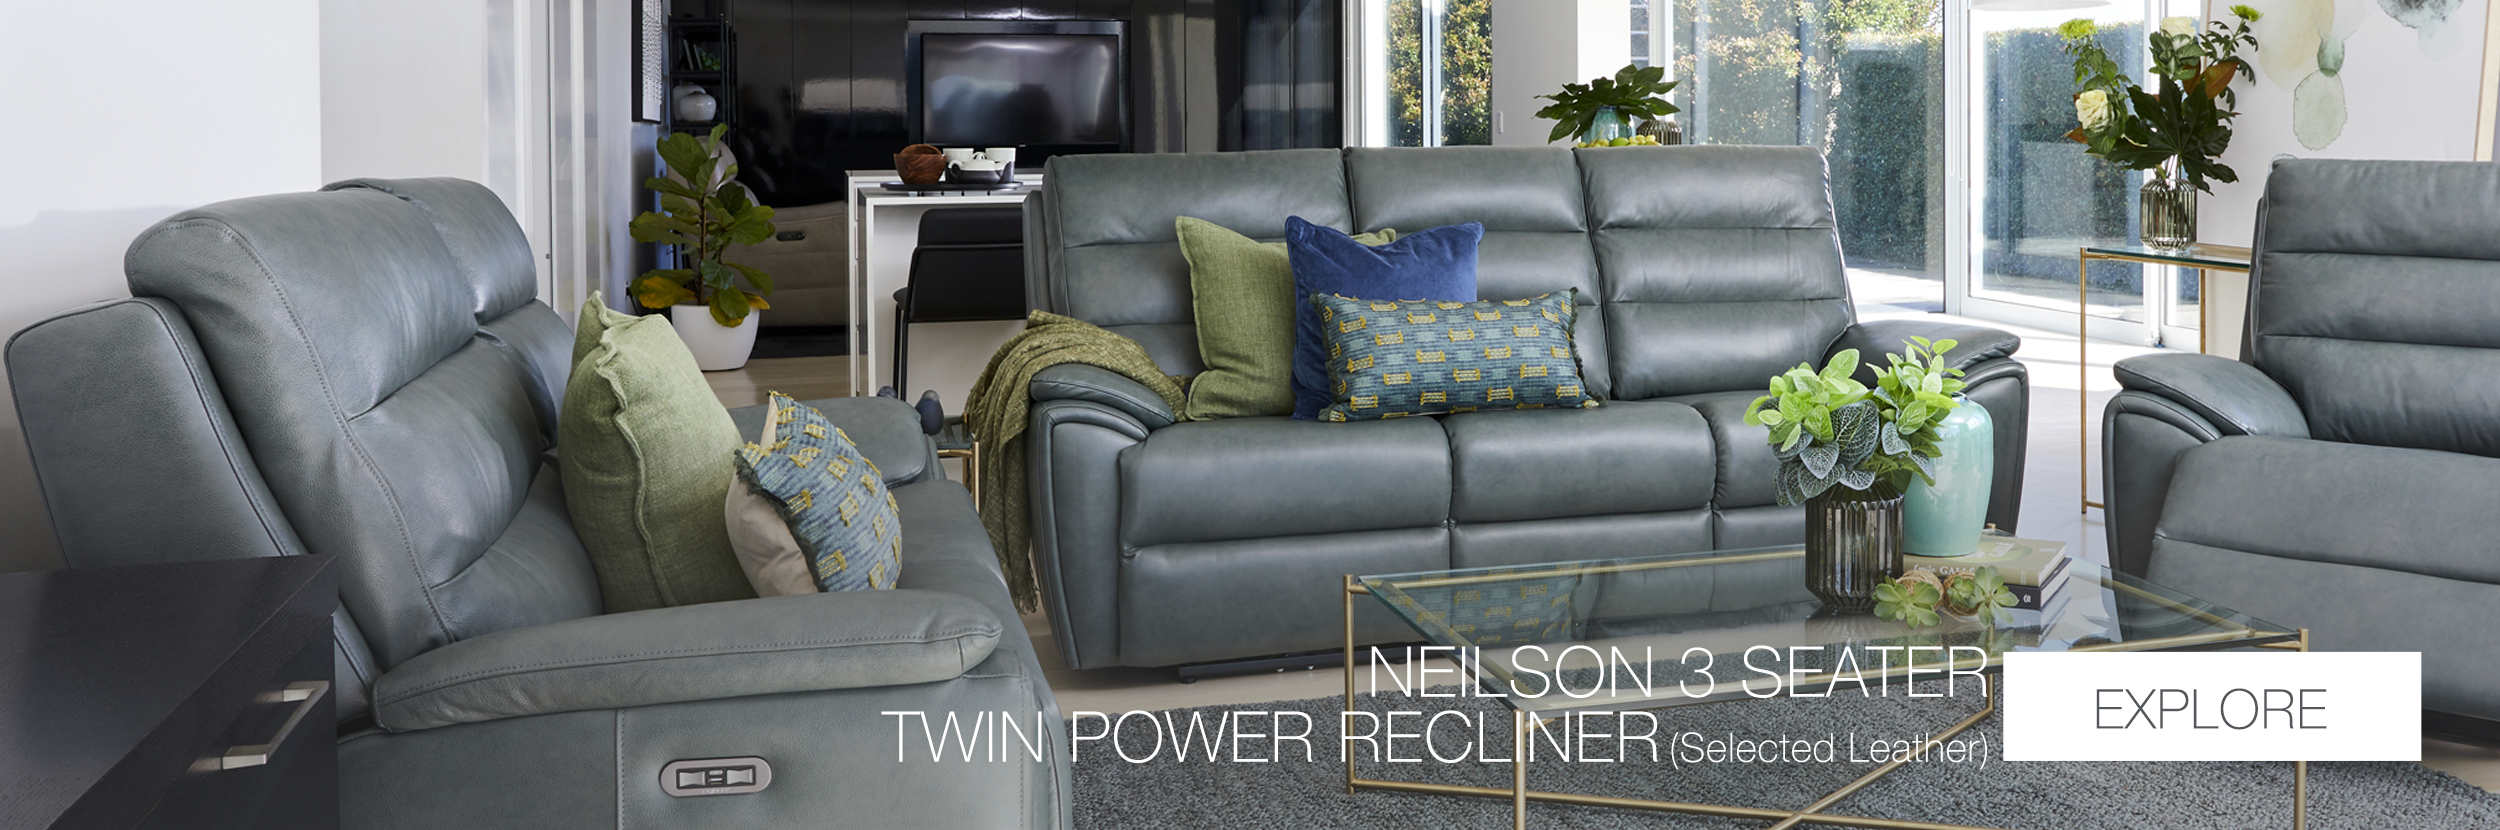 Recliners, Sofas, Lounge Leather Chairs | Comfort | La-Z-Boy